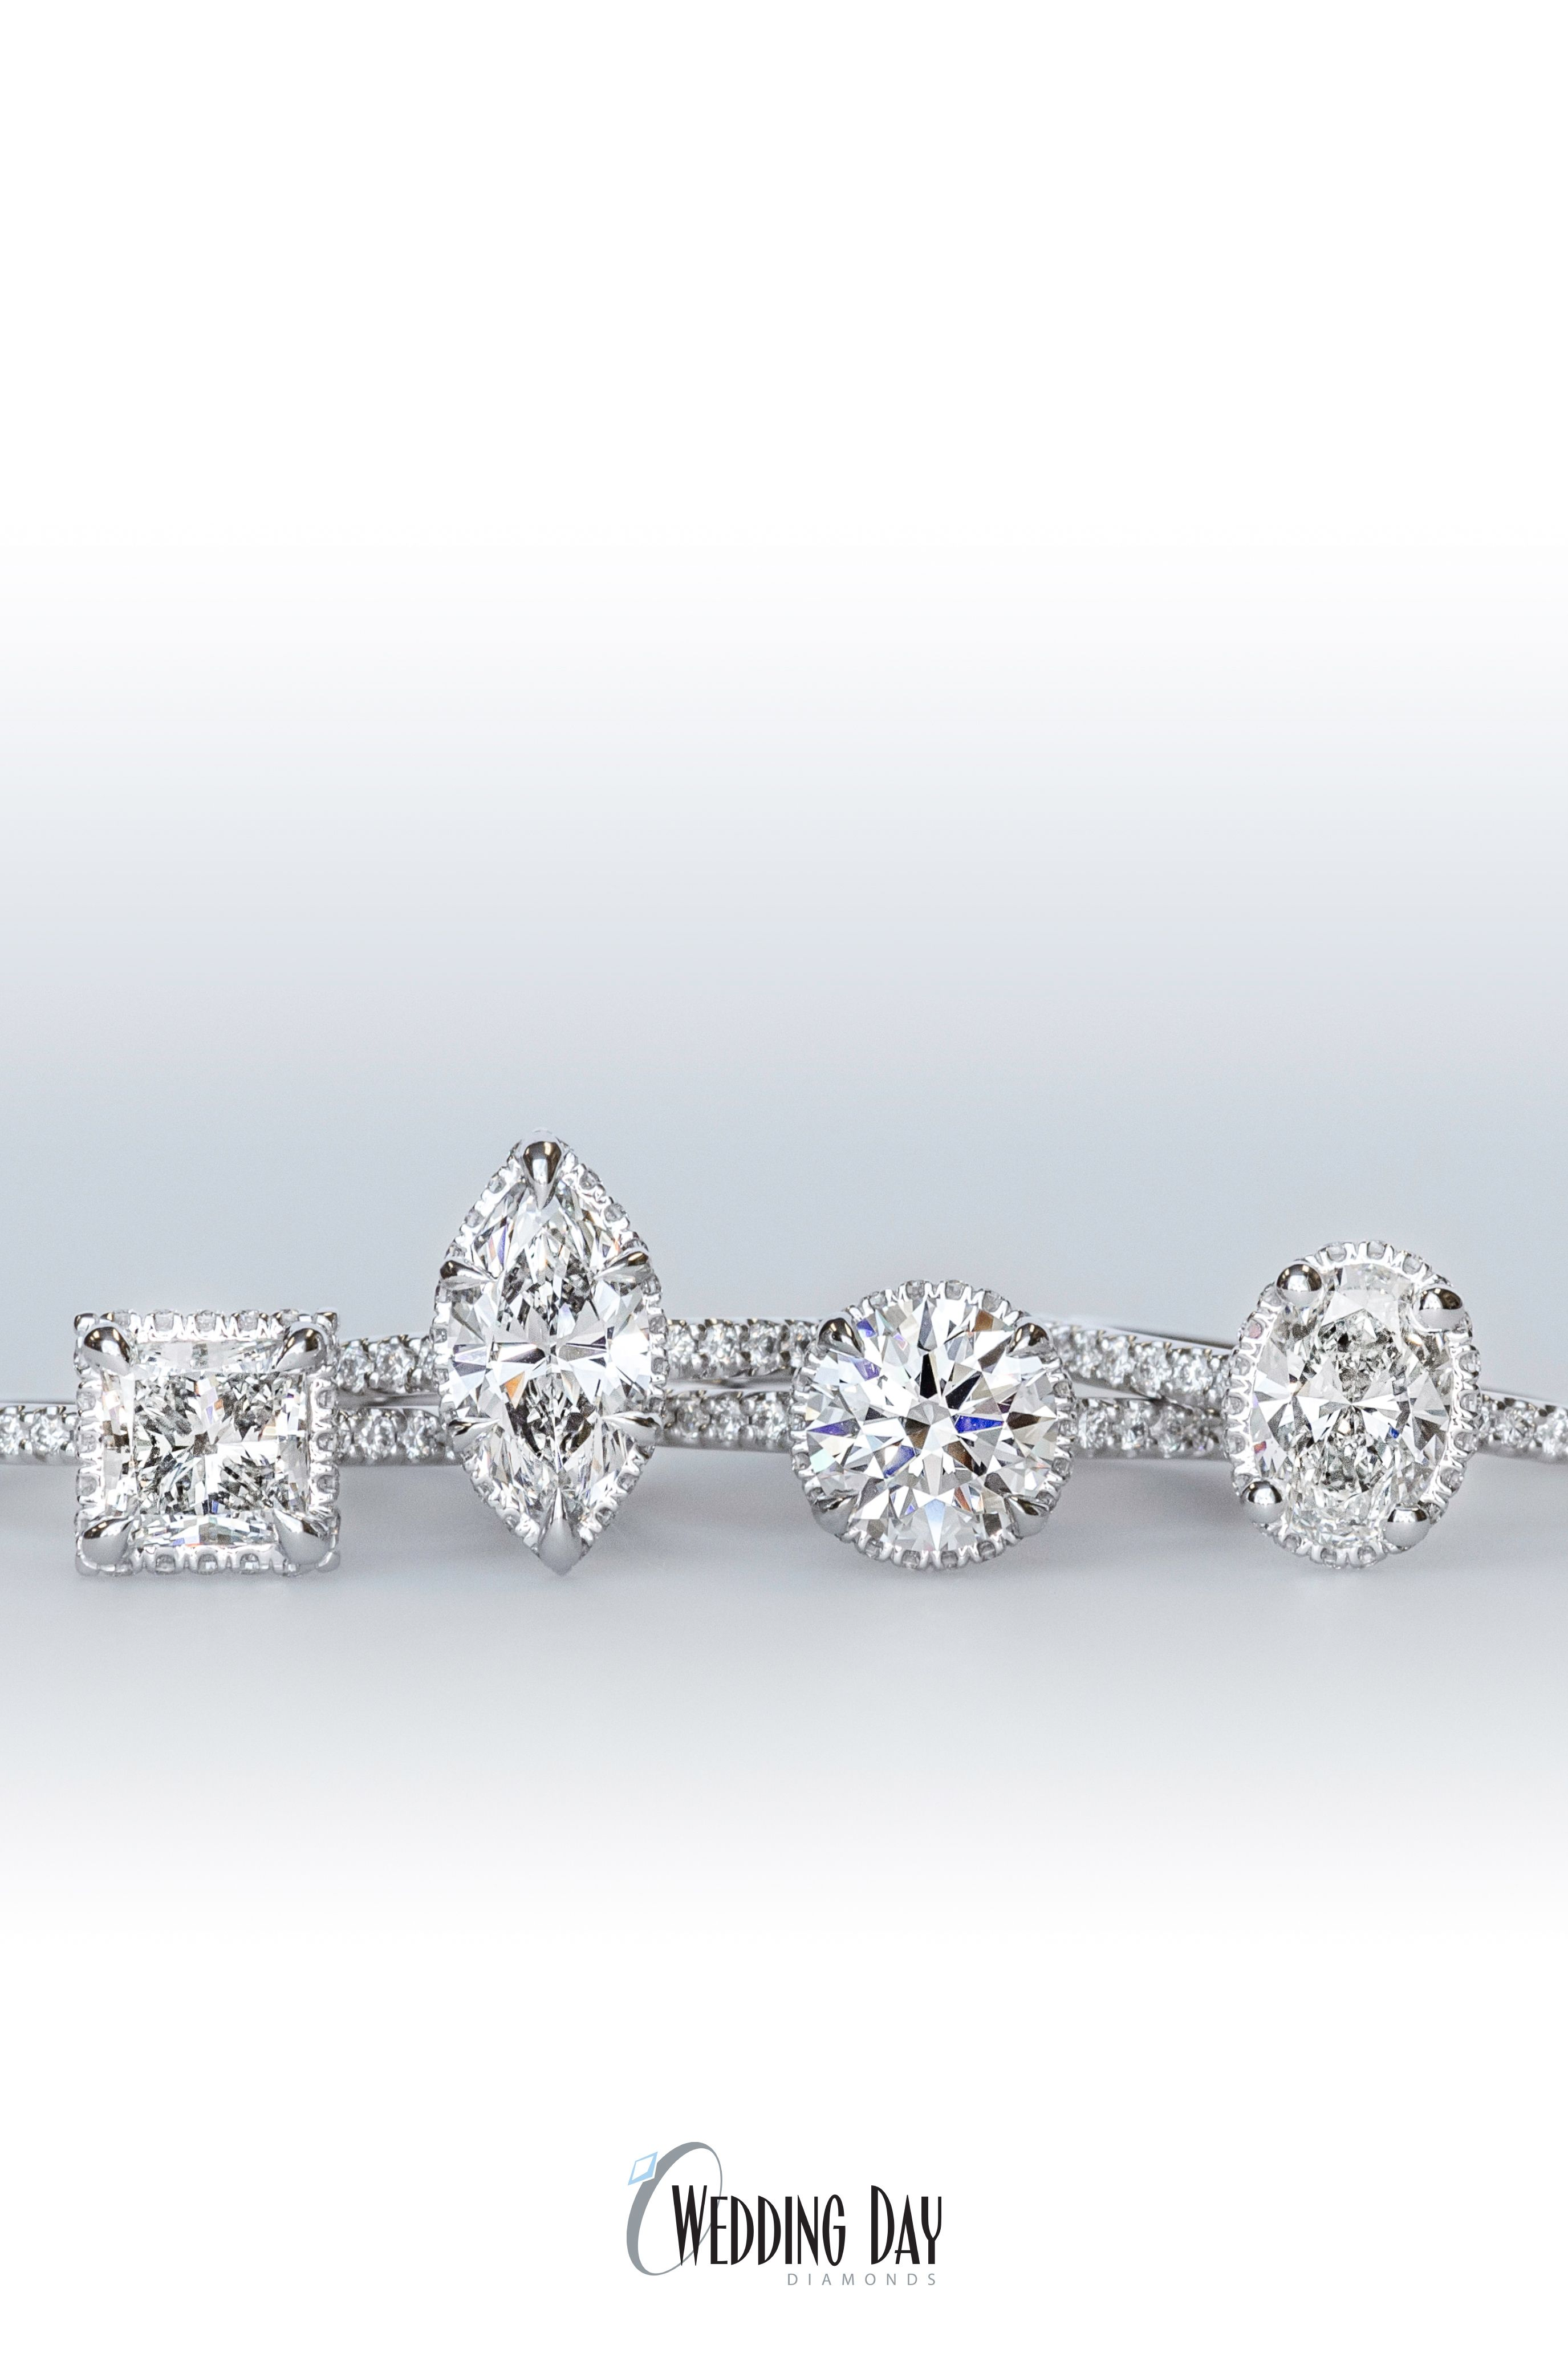 Atia Couture Collection Diamond Engagement Ring Designs Wedding Day Diamonds Engagement Rings